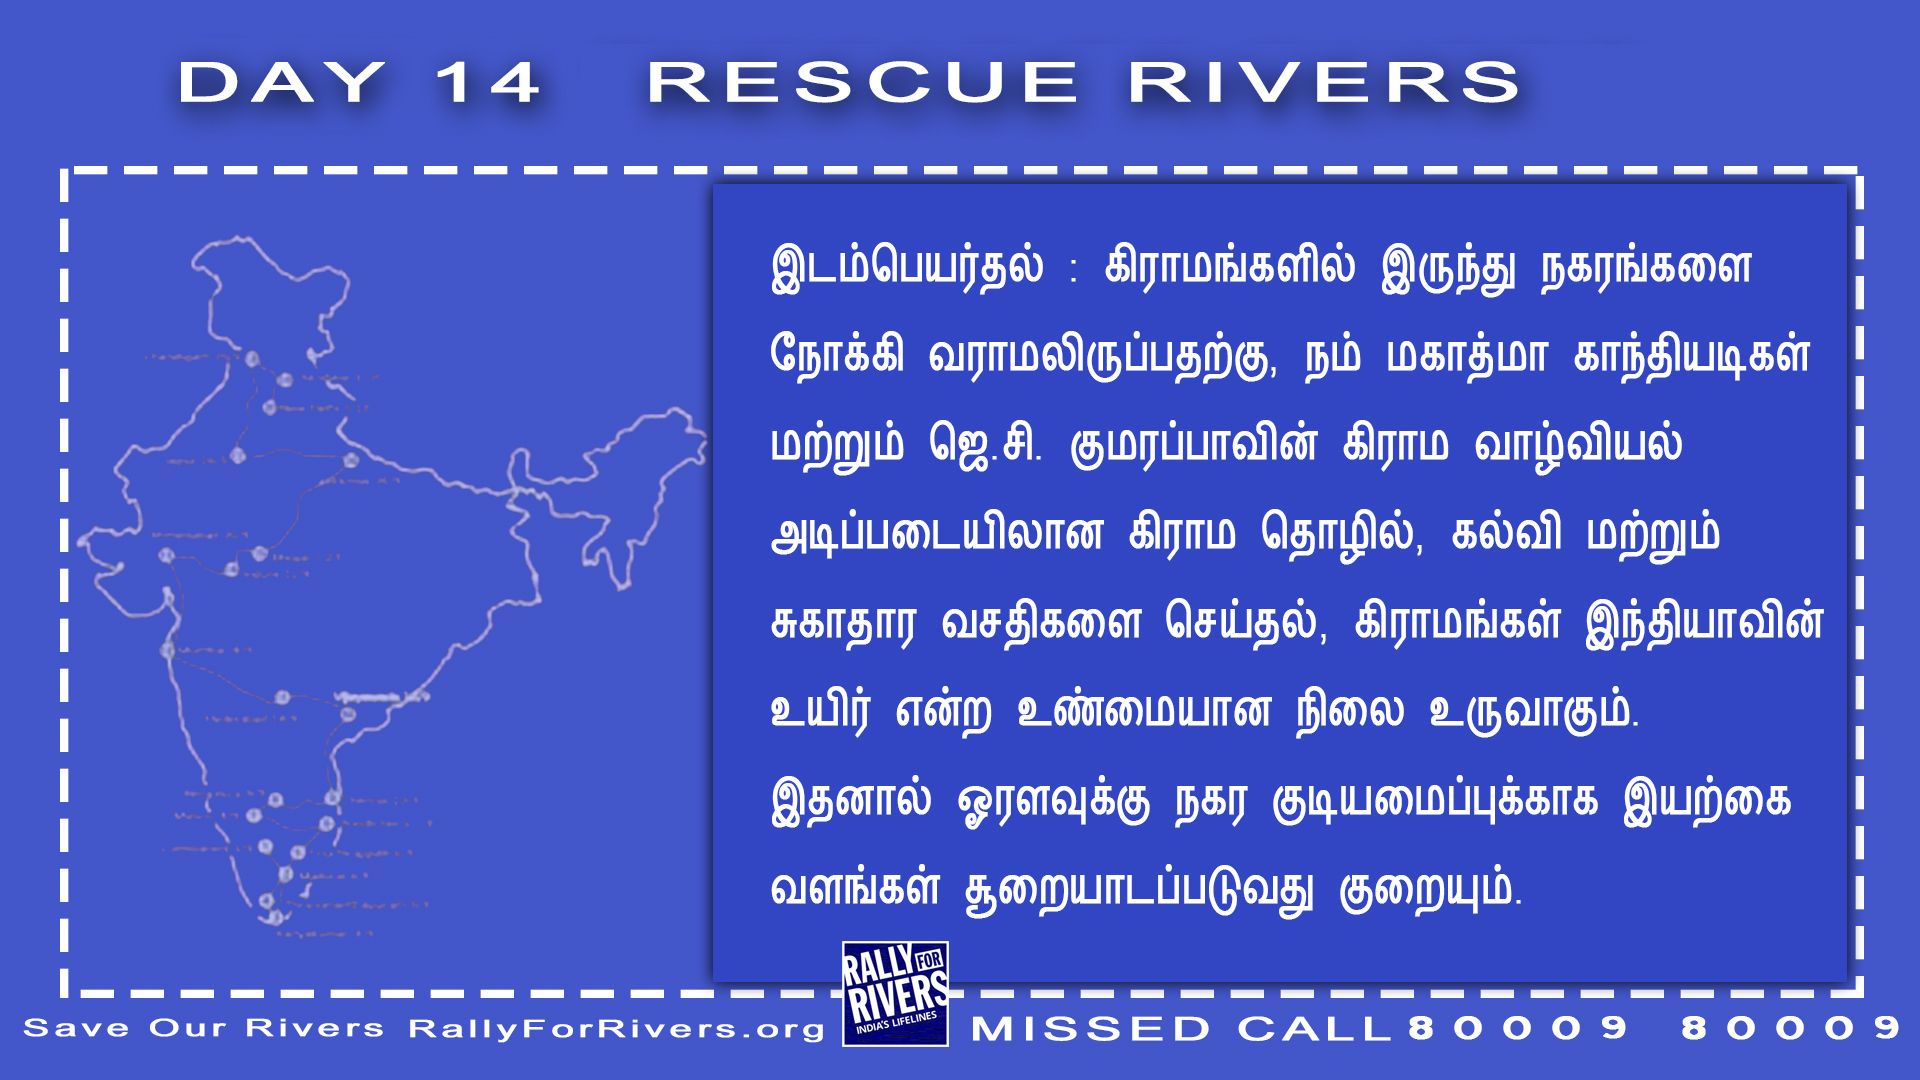 Pin By Fourezmedia On Rally For Rivers Pinterest Rally And River